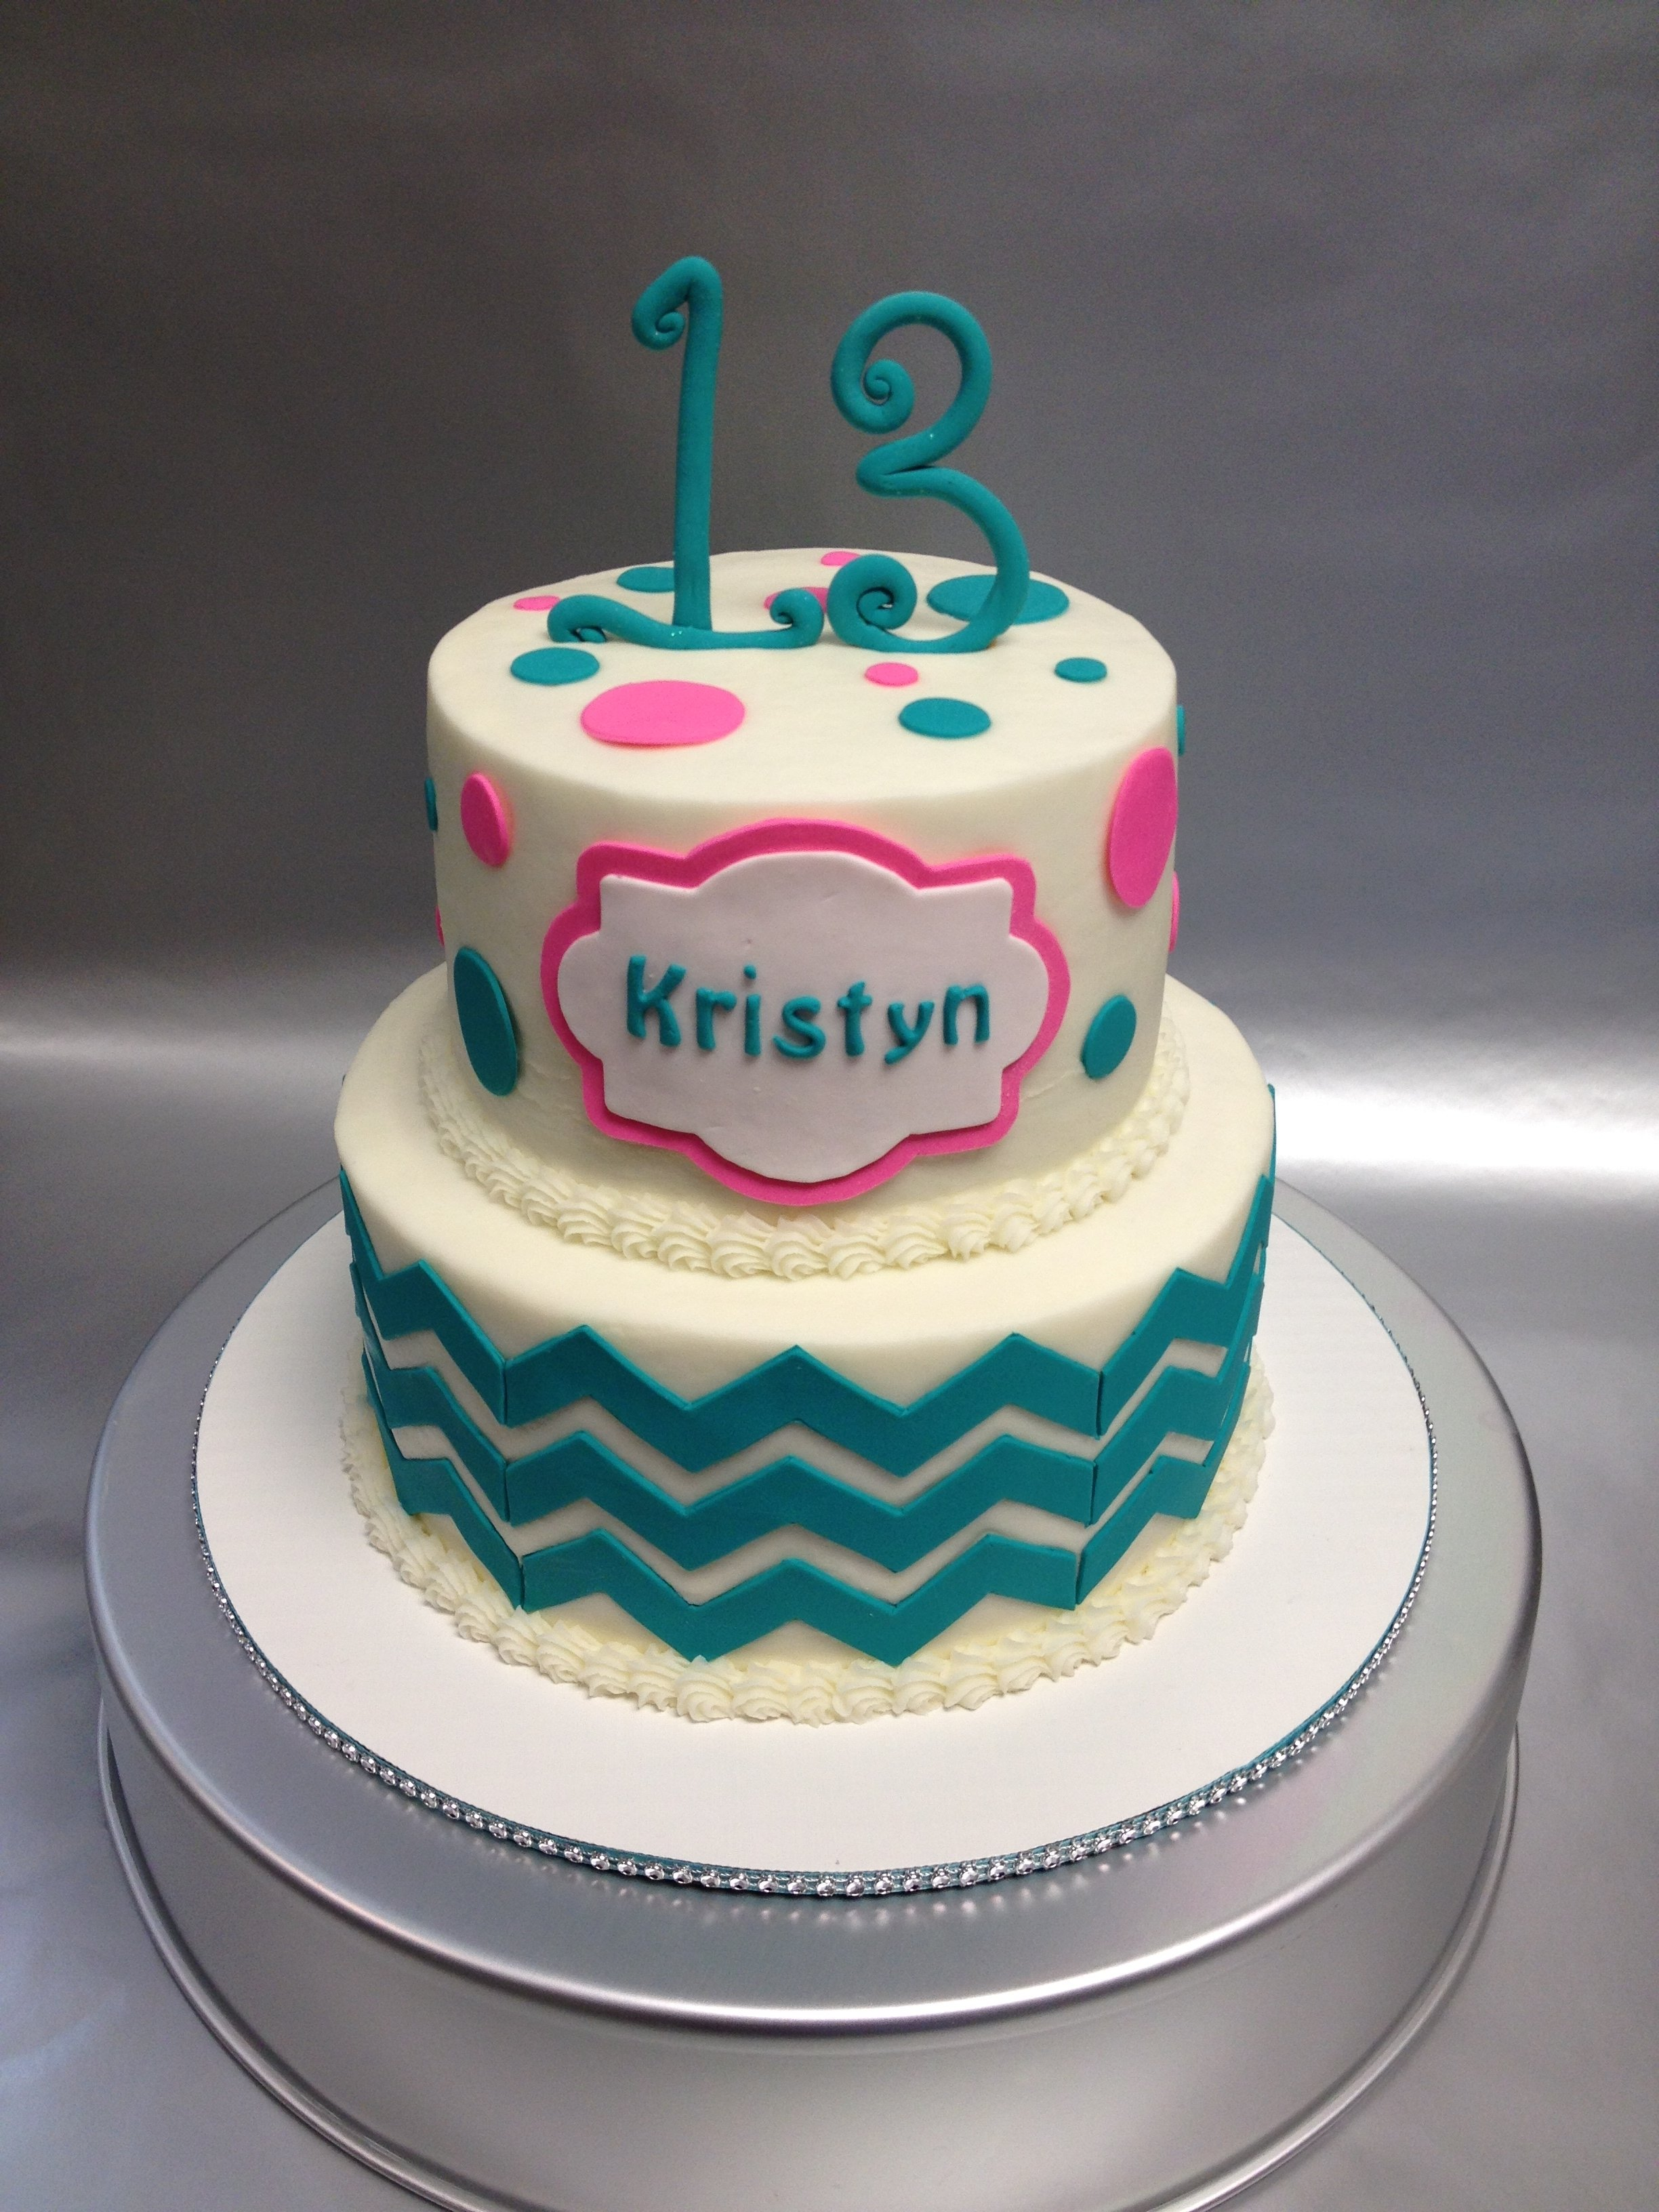 10 Fantastic 14 Year Old Birthday Cake Ideas a pretty 2 tiered gluten free birthday cake design for 13 year old 2020